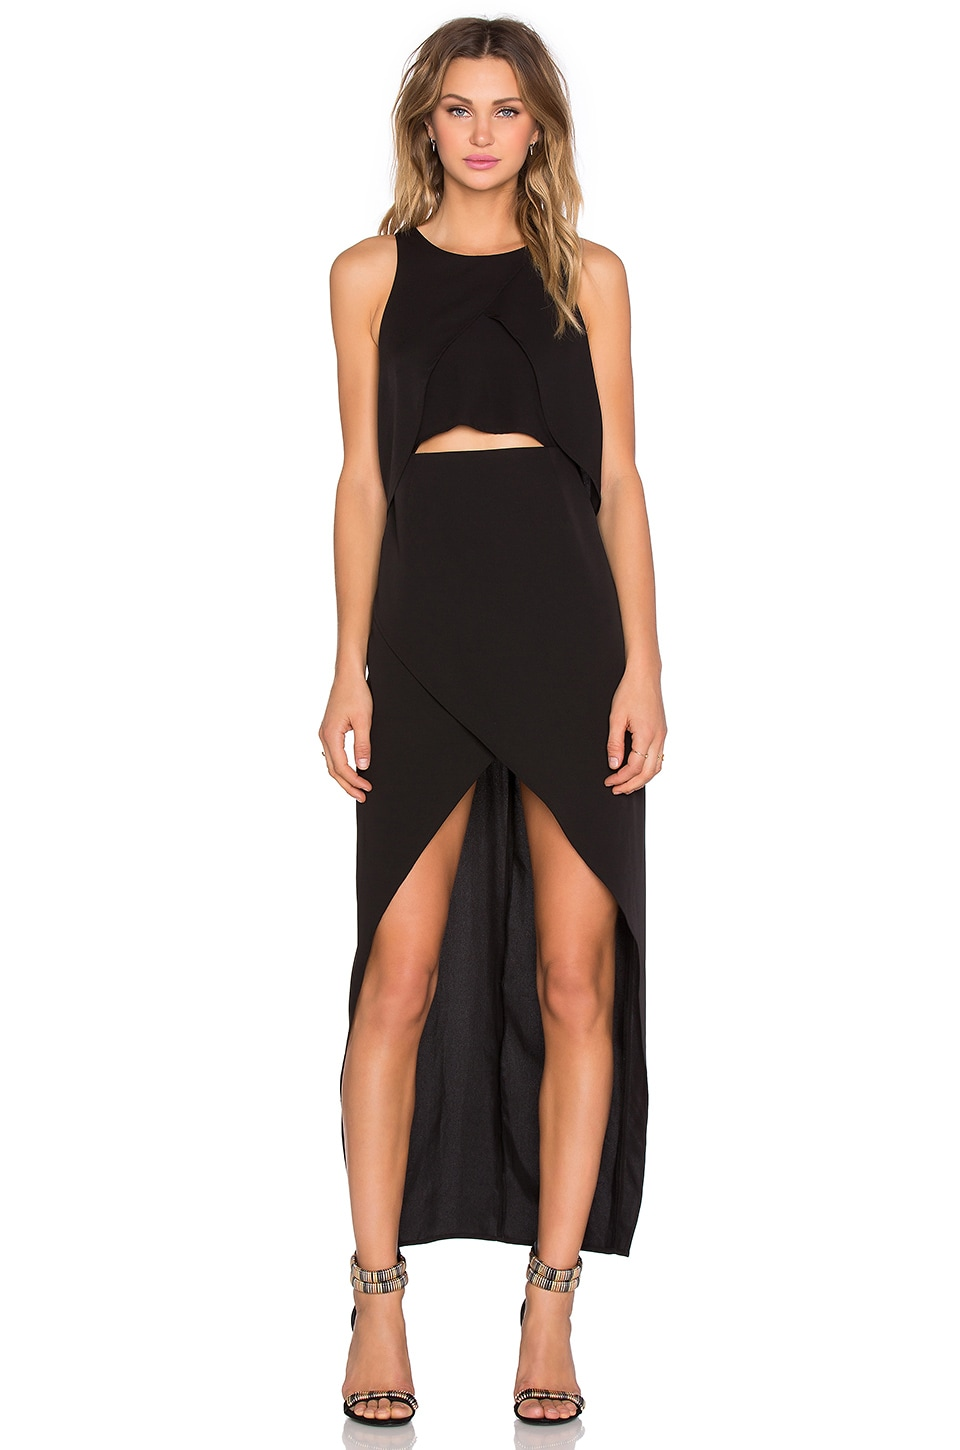 State of Being Moonless Night Dress in Black